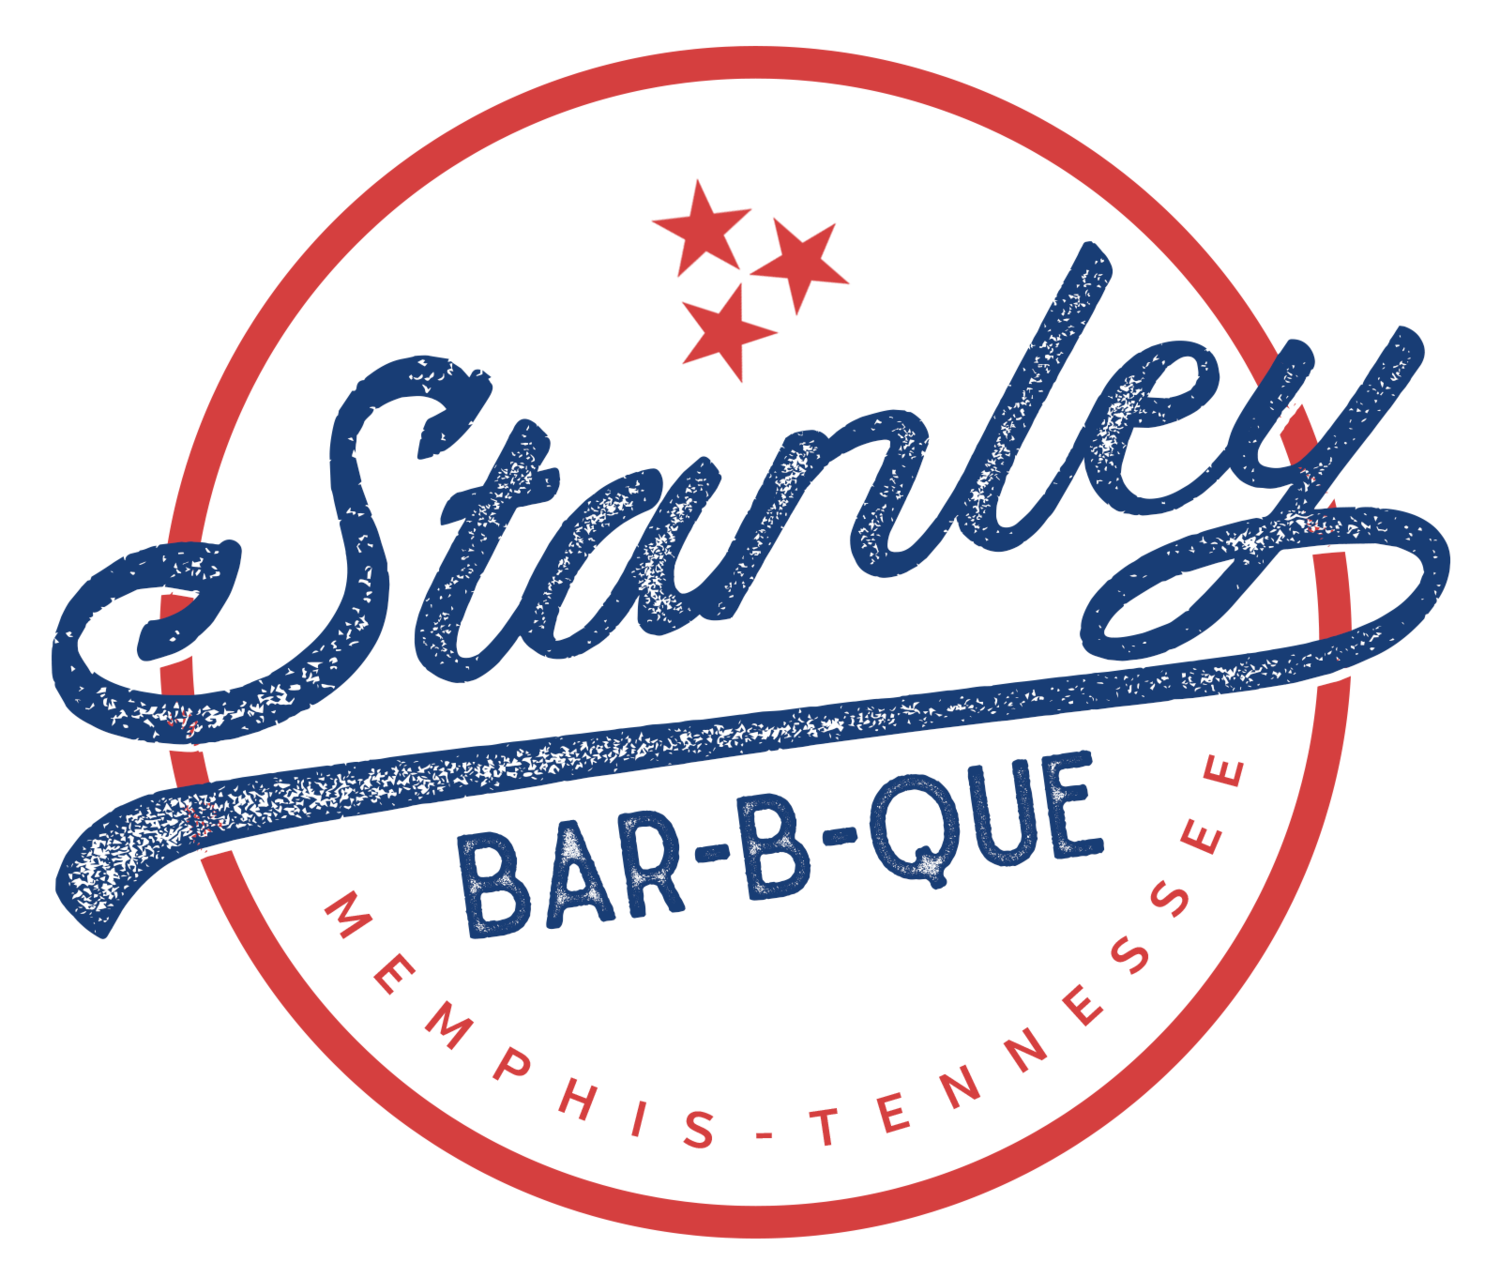 Schweinehaus is now Stanley BBQ